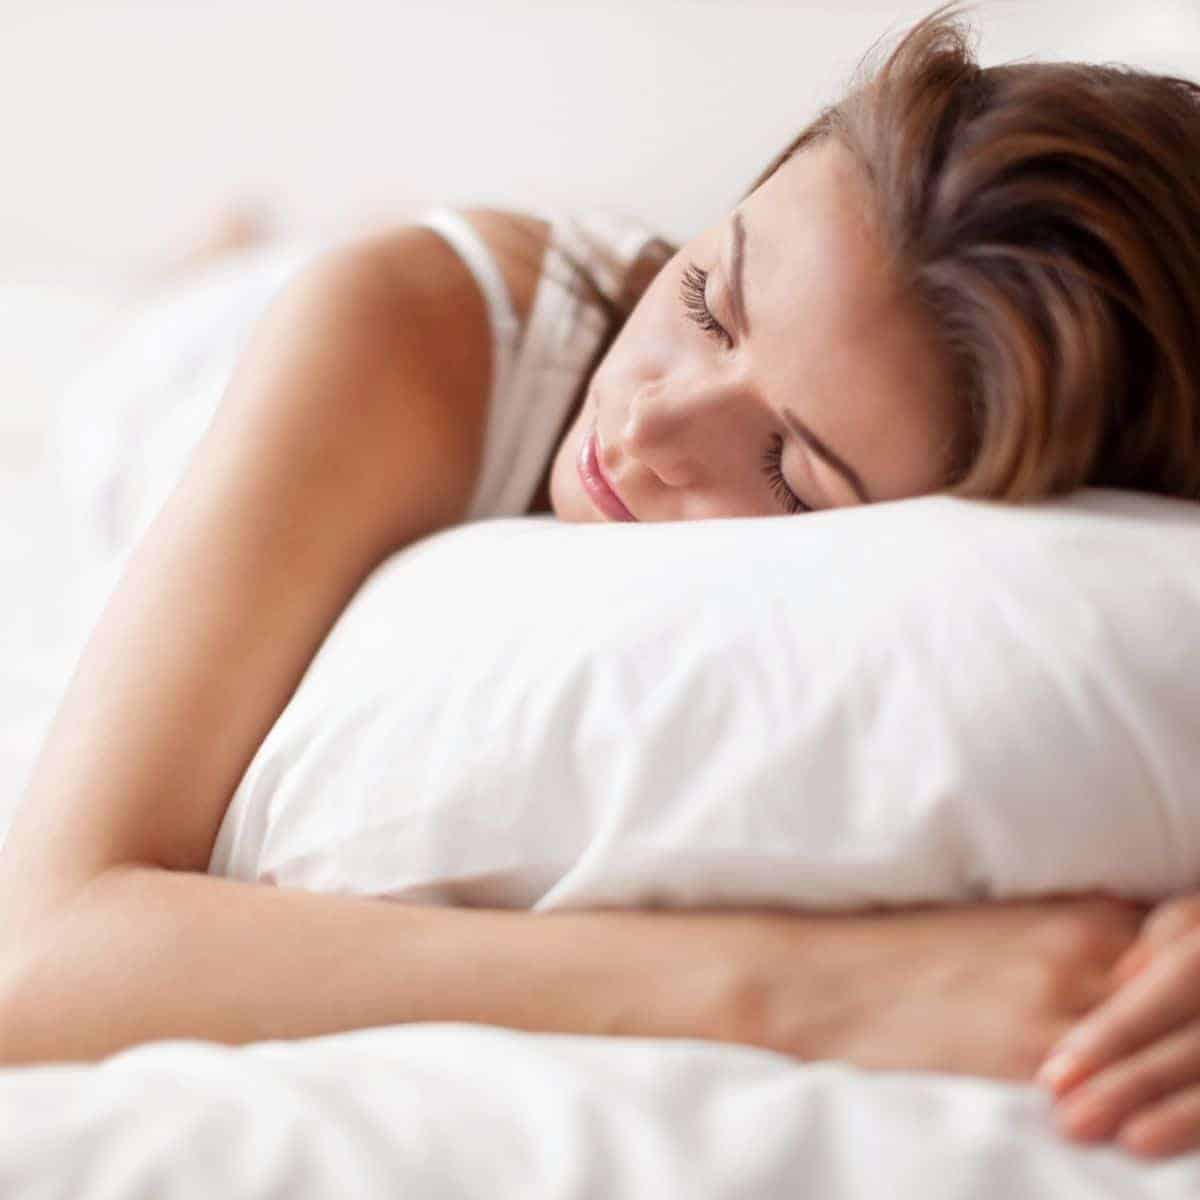 Close-up of a person sleeping on a pillow.